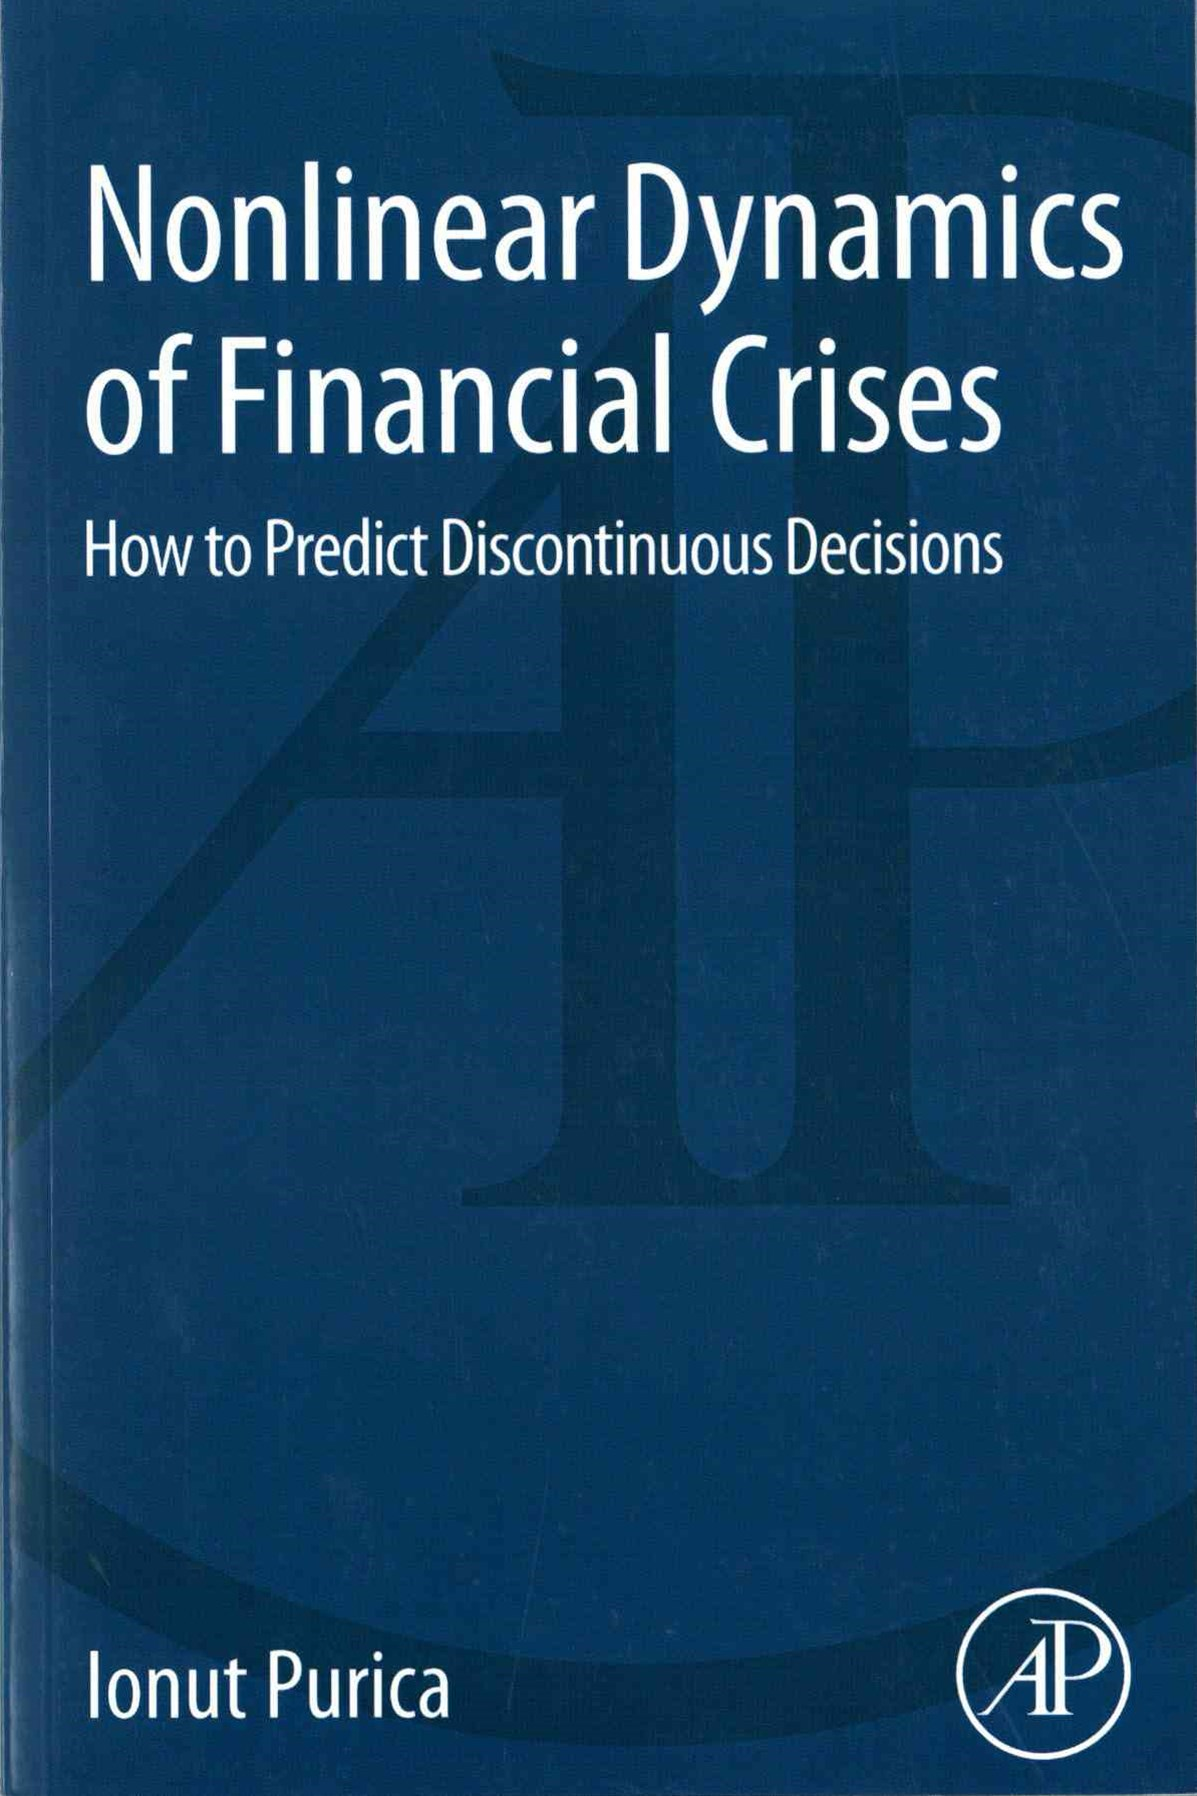 Nonlinear Dynamics of Financial Crises